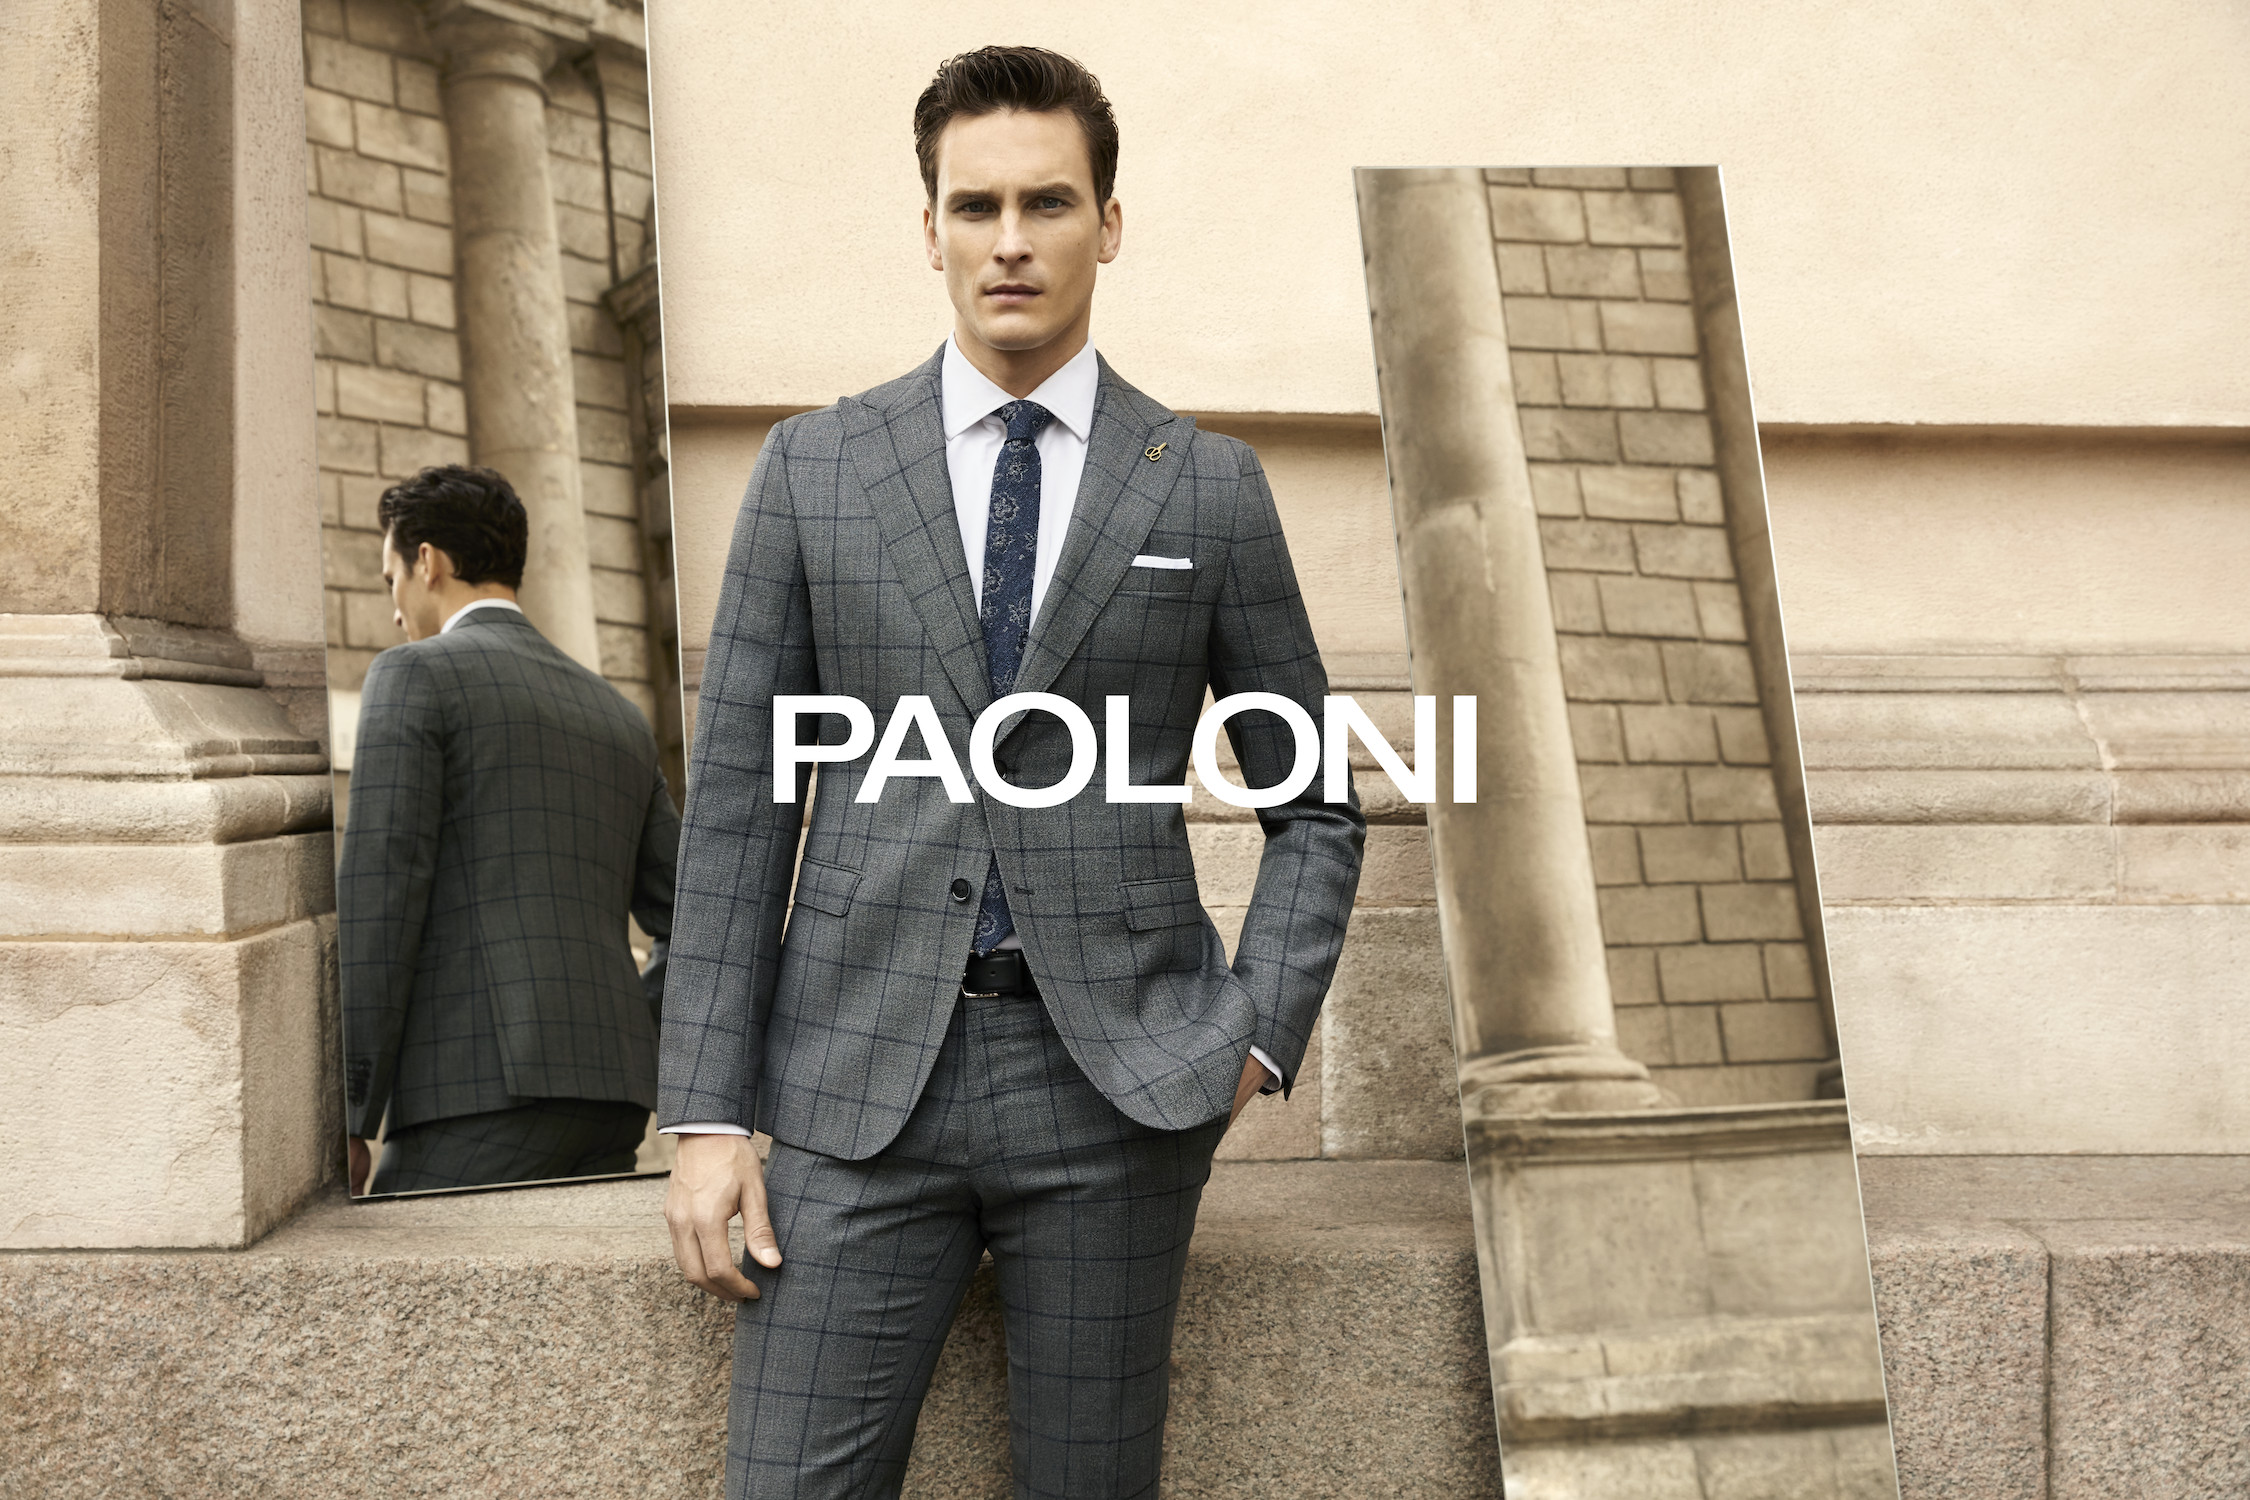 Paoloni ADV 3 0606.png